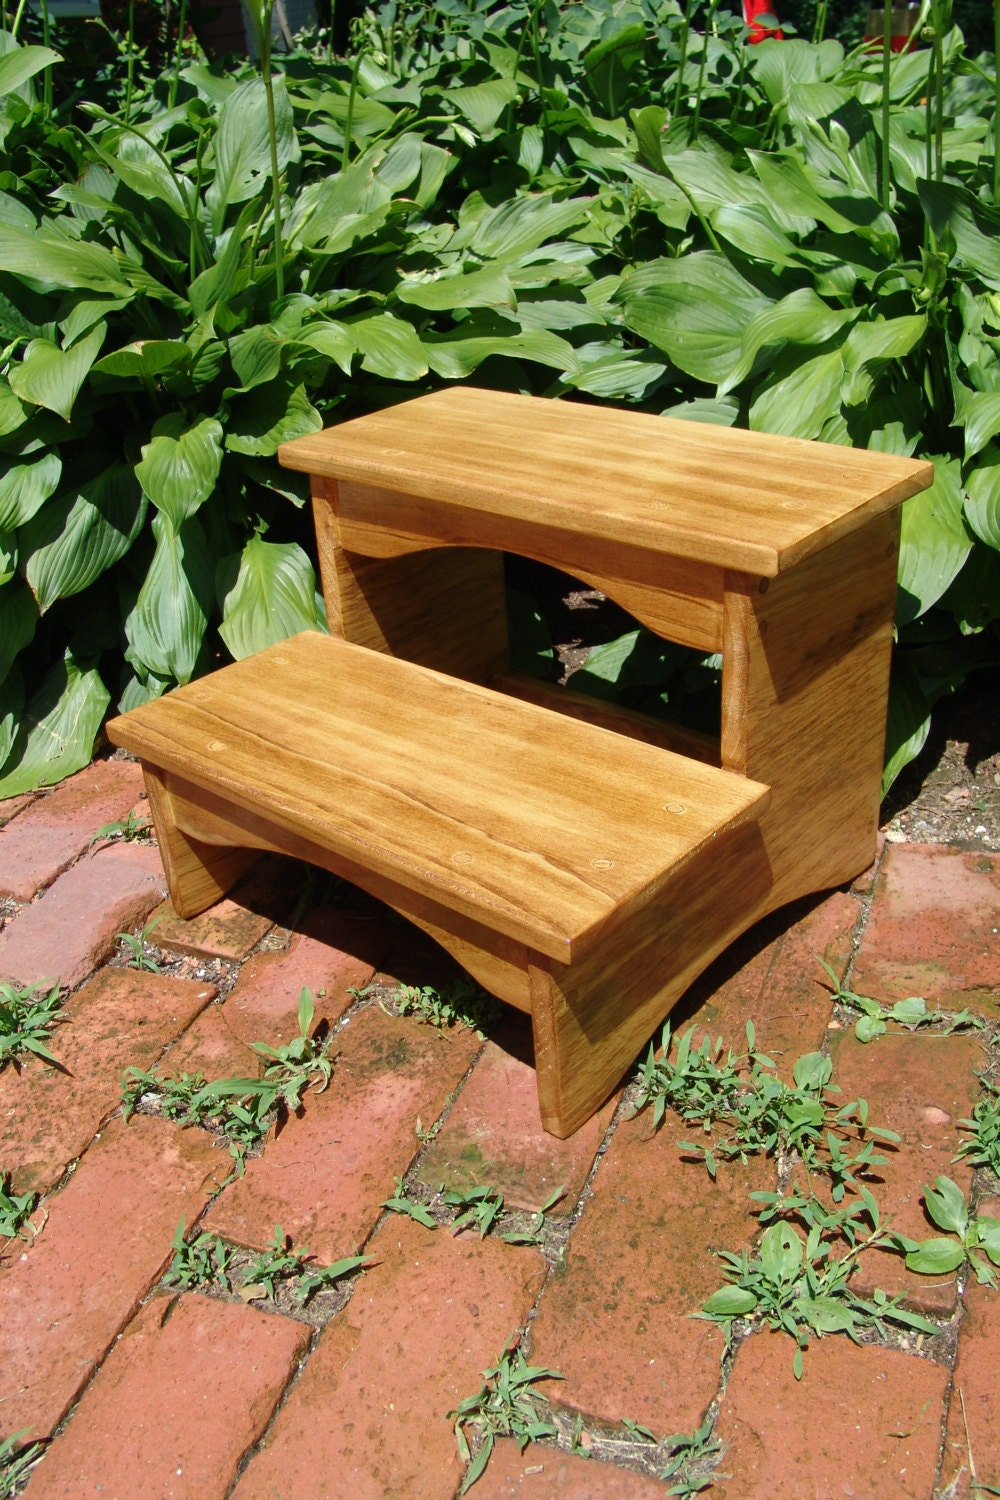 Bed Step Stool: Handcrafted Heavy Duty Step Stool Wooden Kitchen Bedside